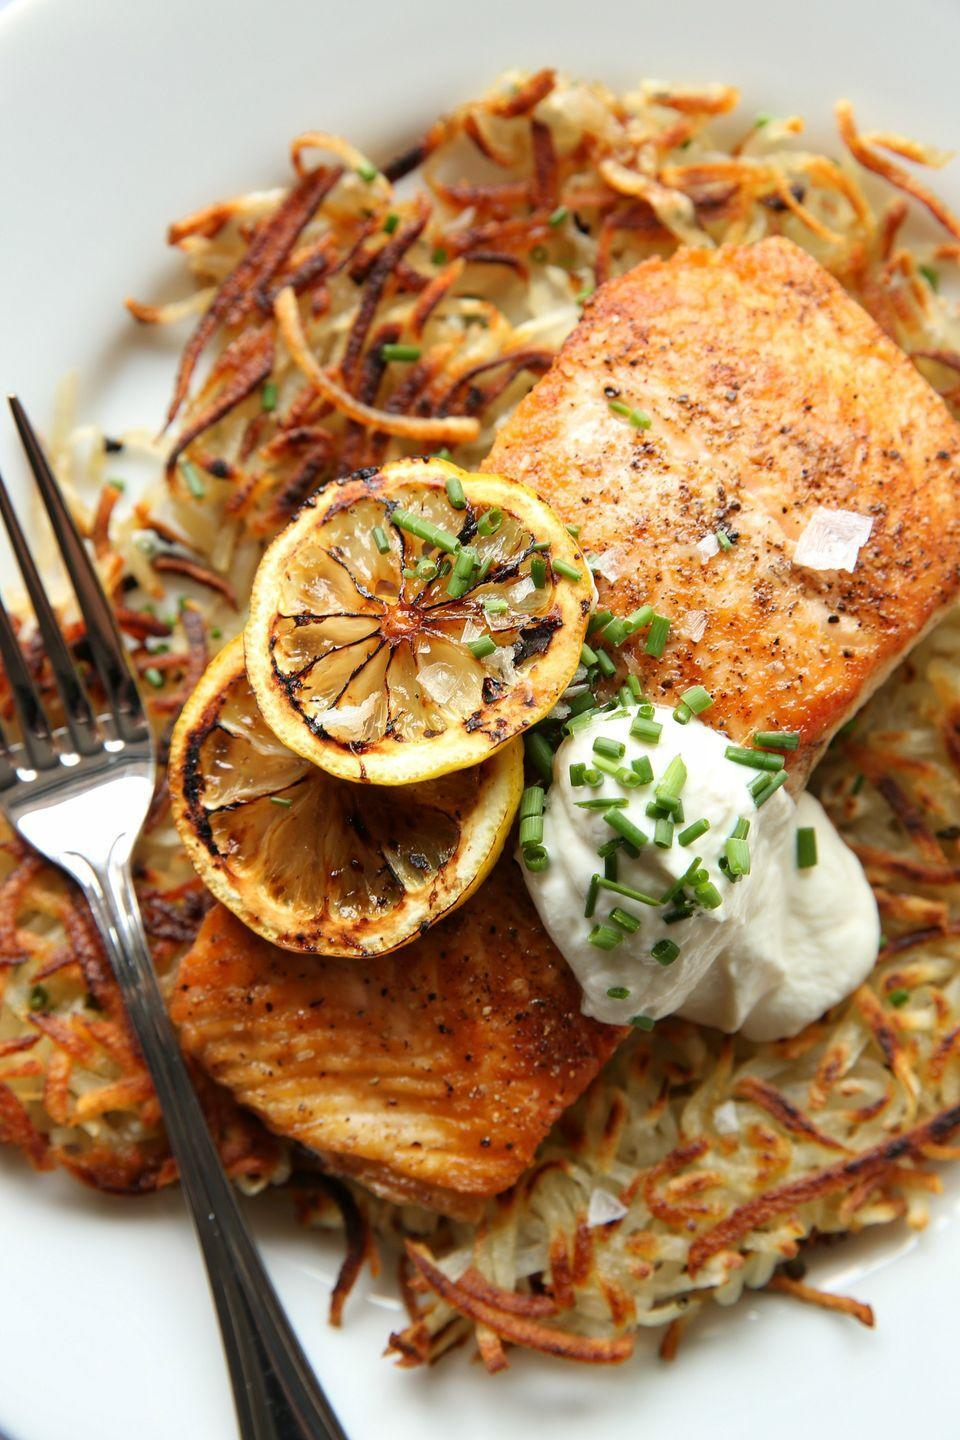 "<p>Salmon with crispy potato pancakes has us feeling brunch-y vibes.</p><p>Get the recipe from <a href=""https://www.delish.com/cooking/recipe-ideas/recipes/a47005/seared-salmon-with-potato-pancakes-and-yogurt-sauce-recipe/"" rel=""nofollow noopener"" target=""_blank"" data-ylk=""slk:Delish"" class=""link rapid-noclick-resp"">Delish</a>.</p>"